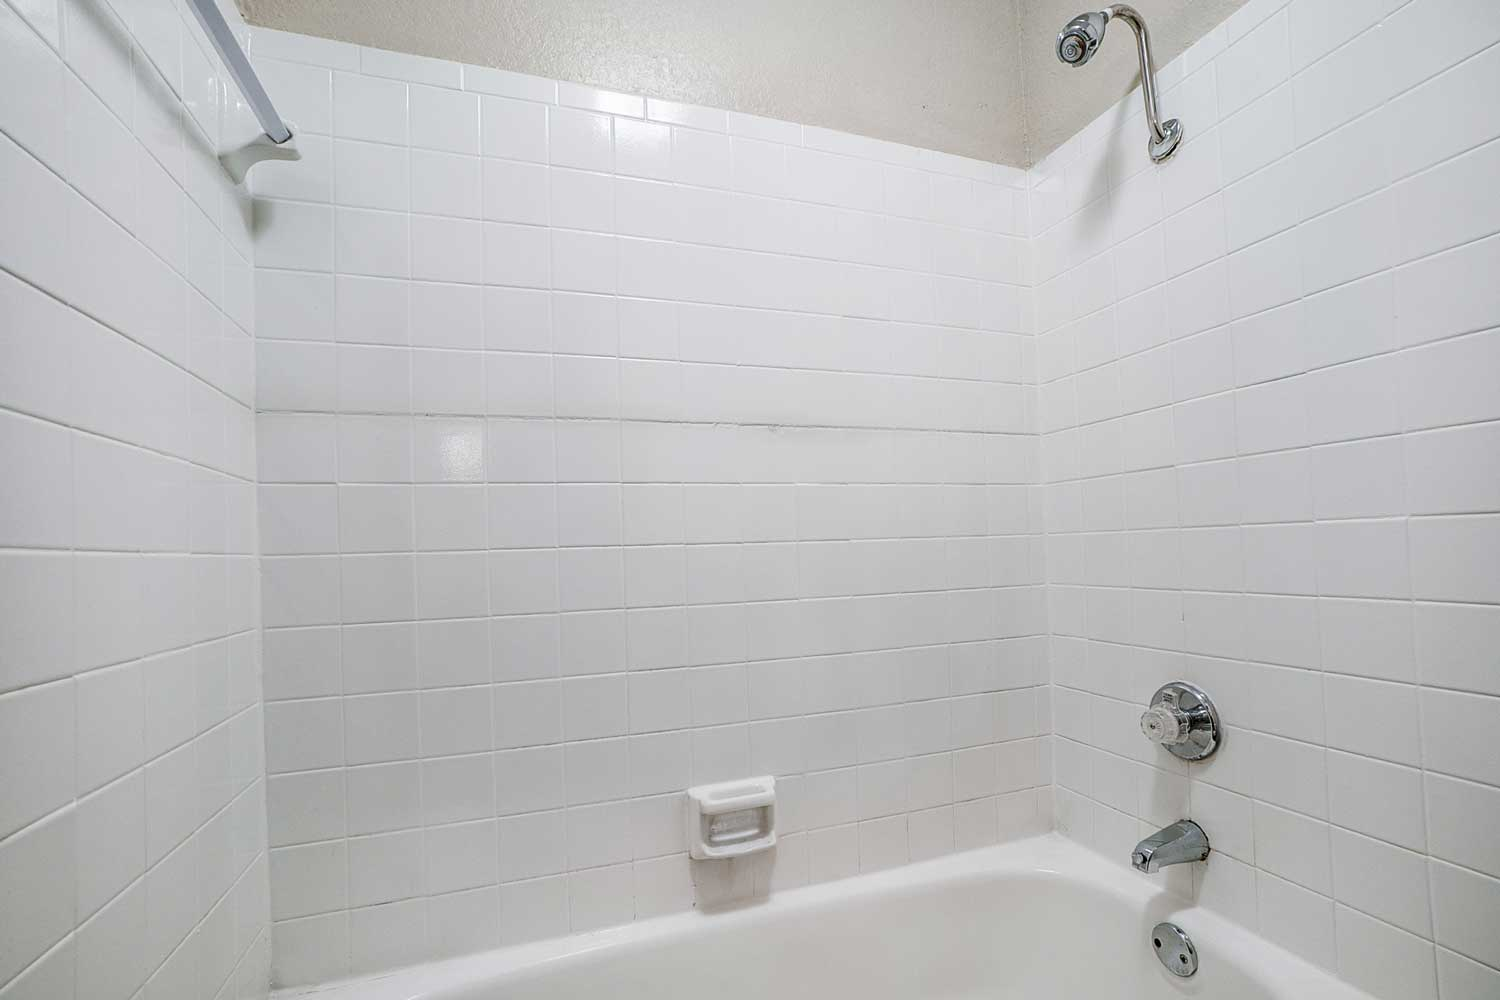 Bathtub and Shower at Riviera Apartments in Dallas, Texas